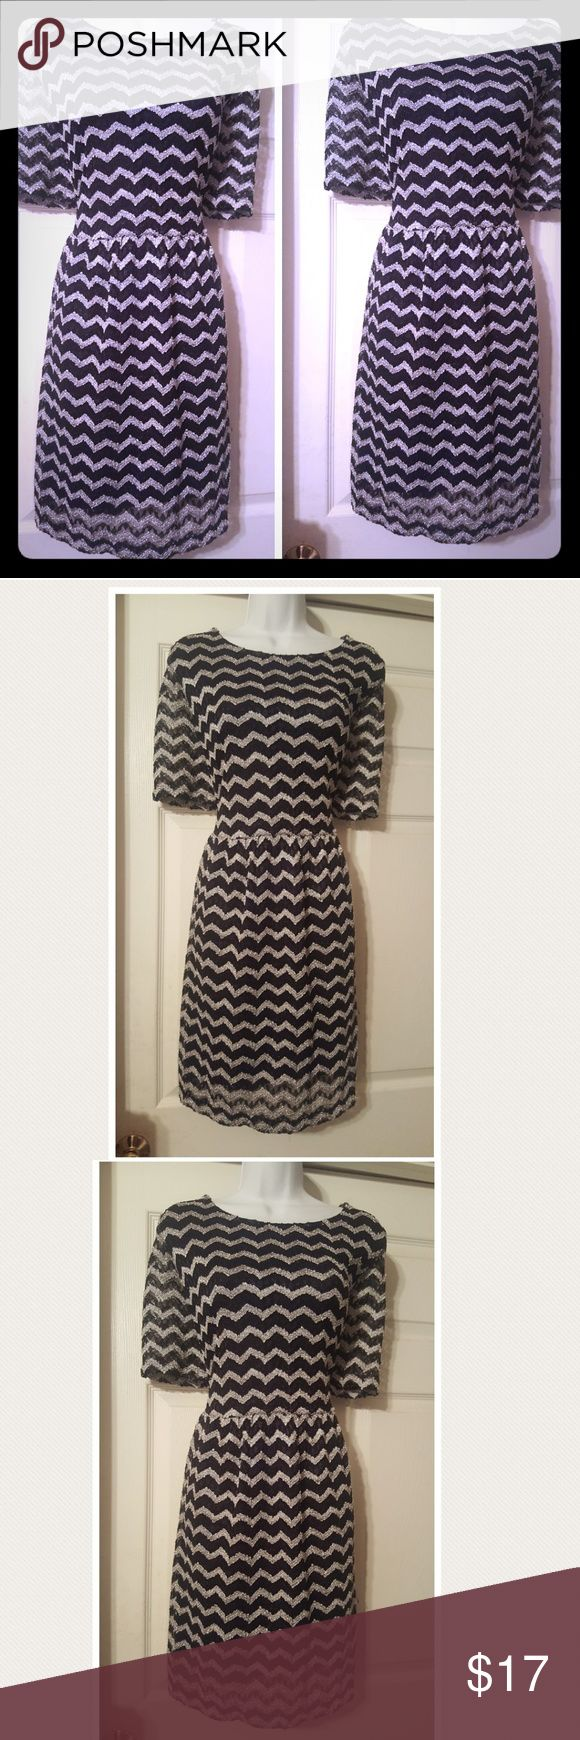 Black and silver chevron print fit and flare dress Cute Black and silver chevron print fit and flare dress with a high round neckline and 3/4 length sleeves. Dress is in excellent like new condition Dresses